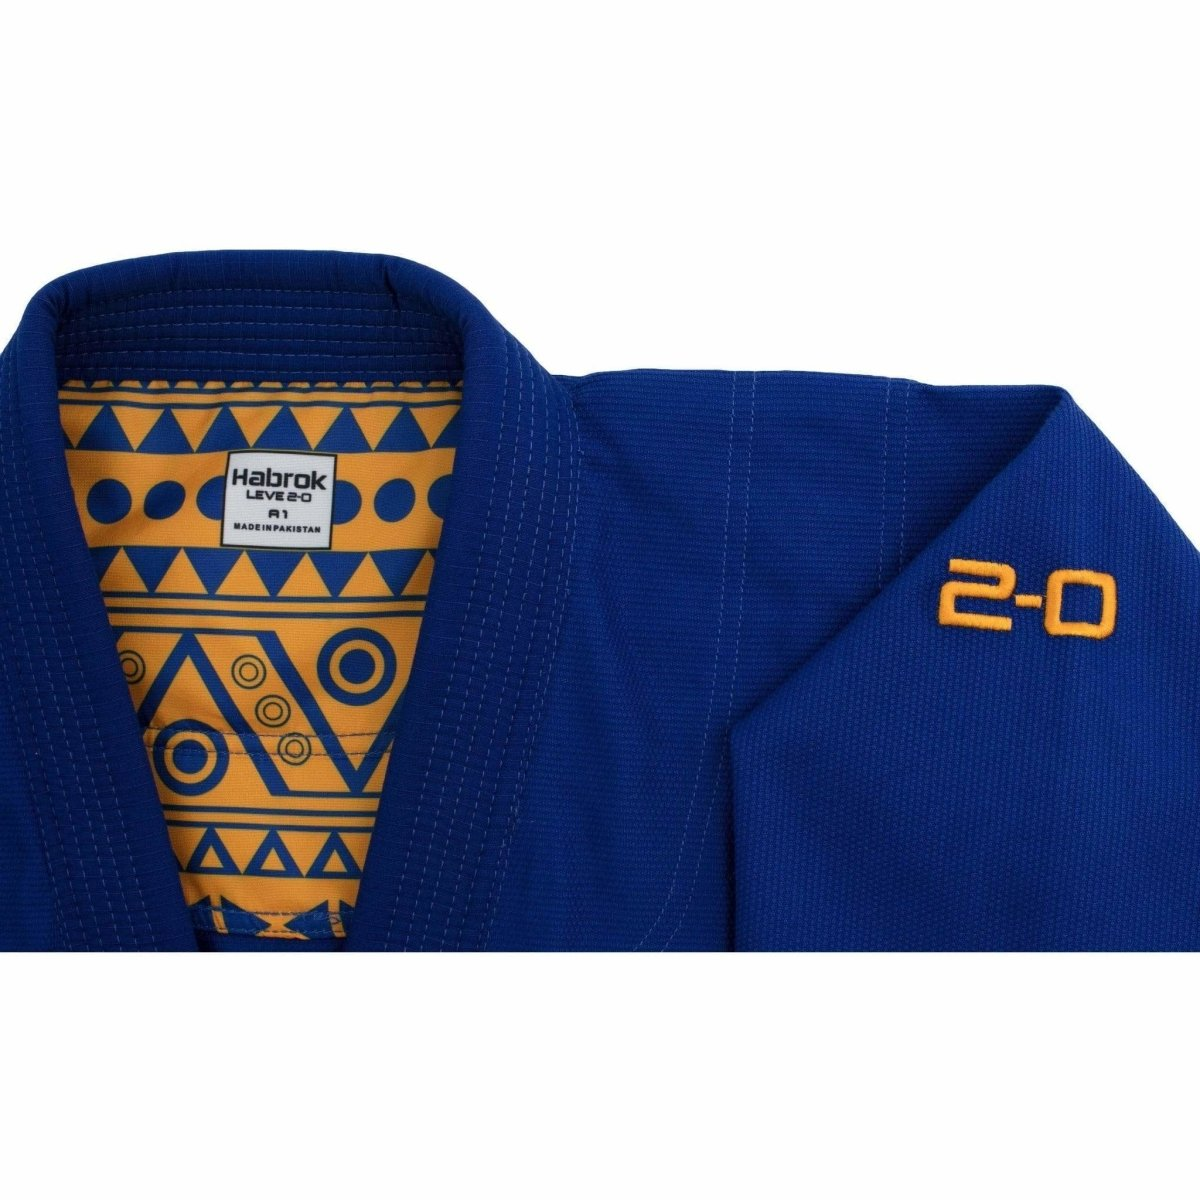 Habrok Jiu Jitsu Gi Leve 2.0 | BJJ GI Men | Premium Ultra Light Weight  | JIU JITSU